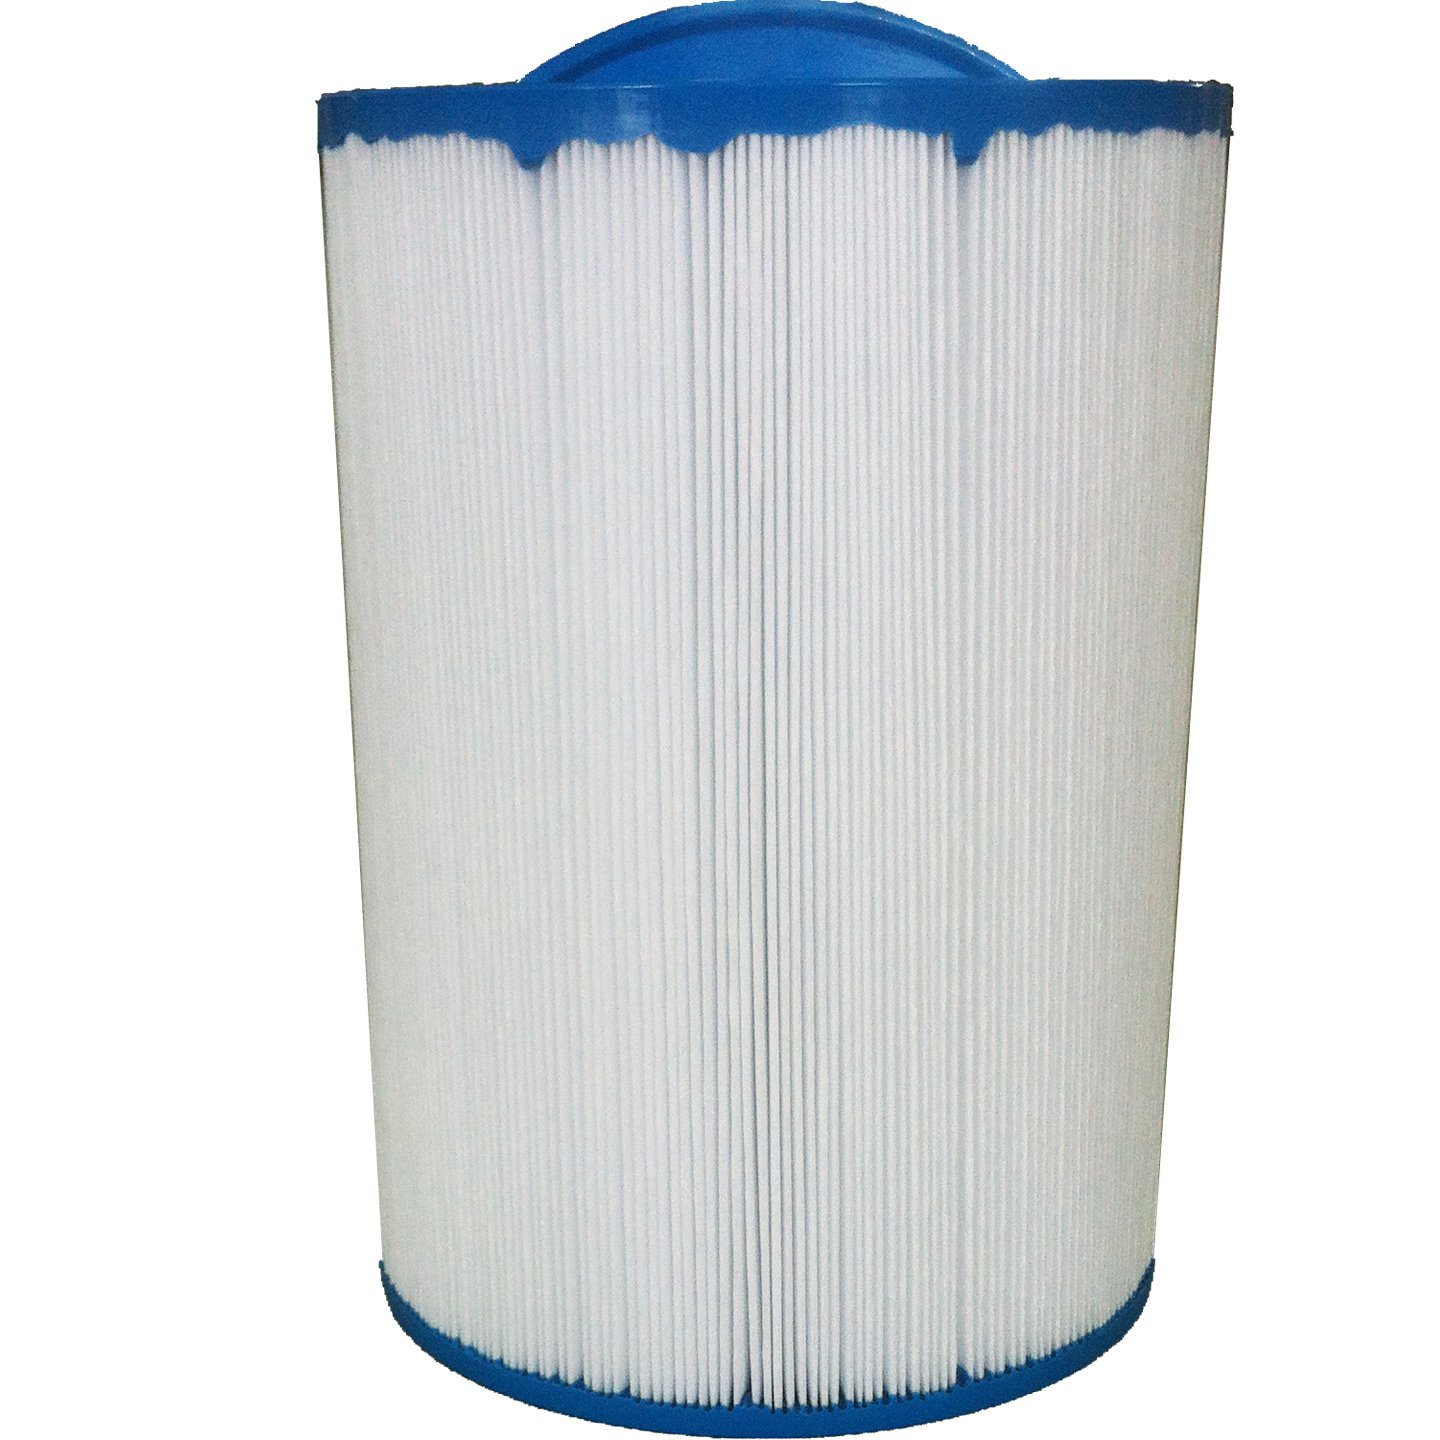 Tier1 Waterways 817-0050, Front Access Skimmer, Pleatco PWW50, Filbur FC-0359, Unicel 6CH-940 Comparable Replacement Spa Filter Cartridge